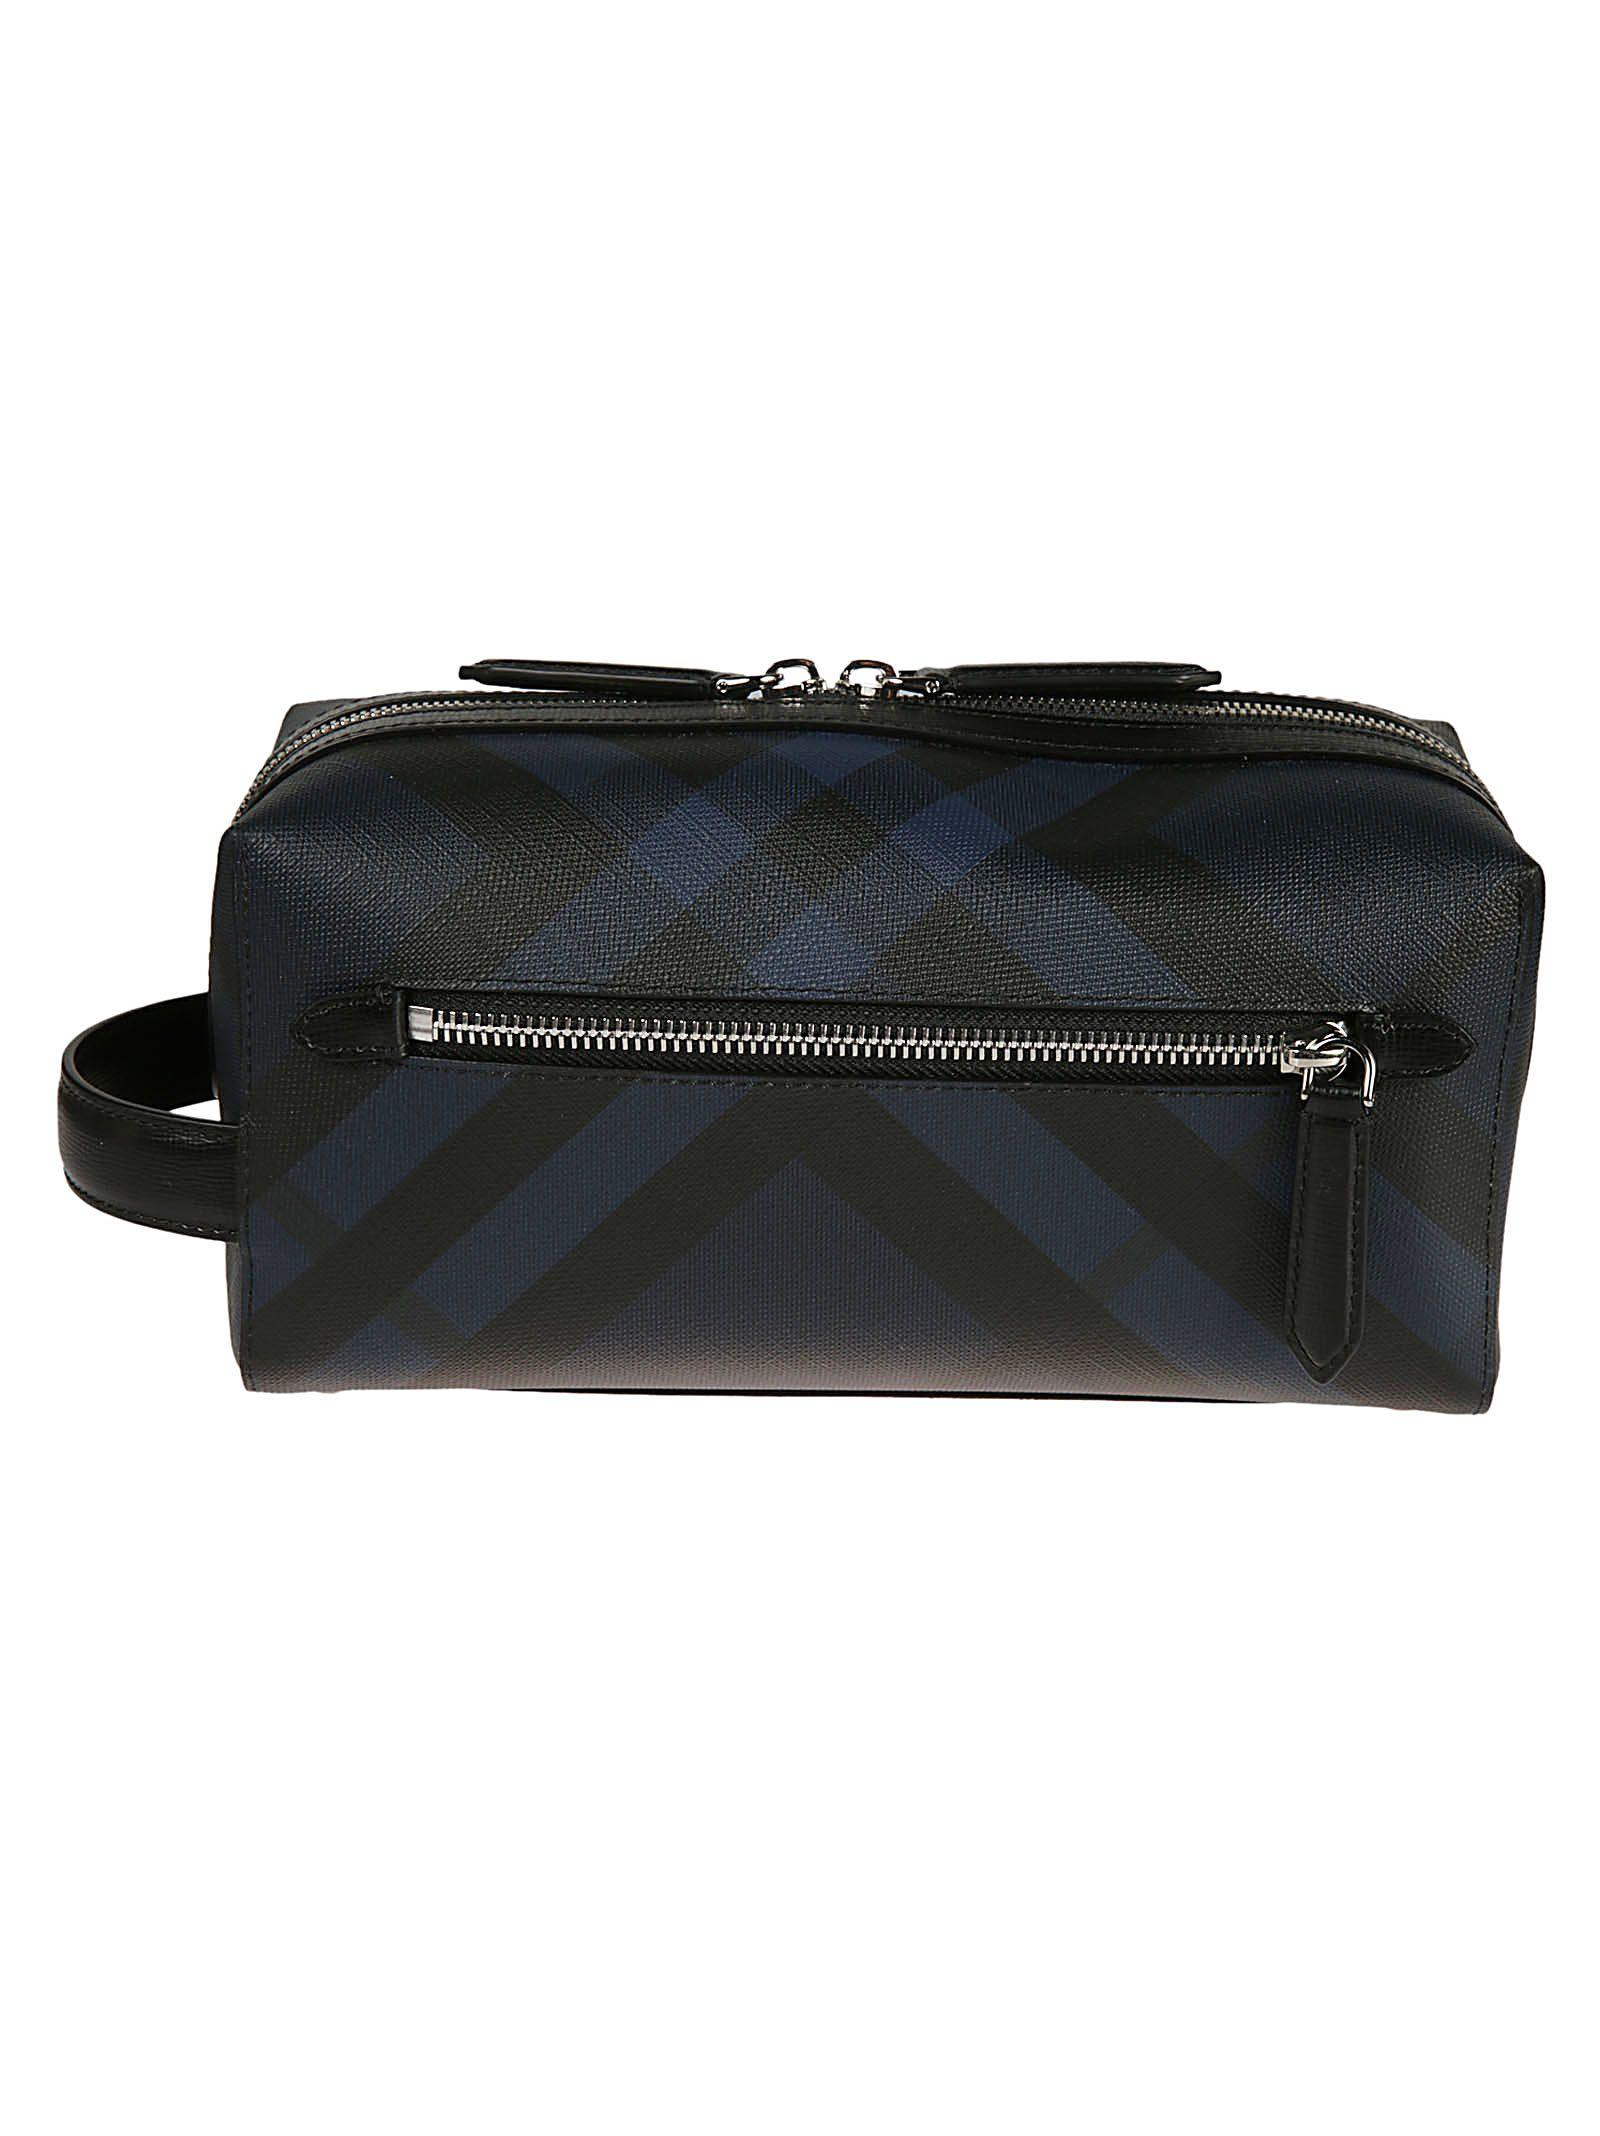 7754ed2440a3 Burberry London Check Clutch In Navy